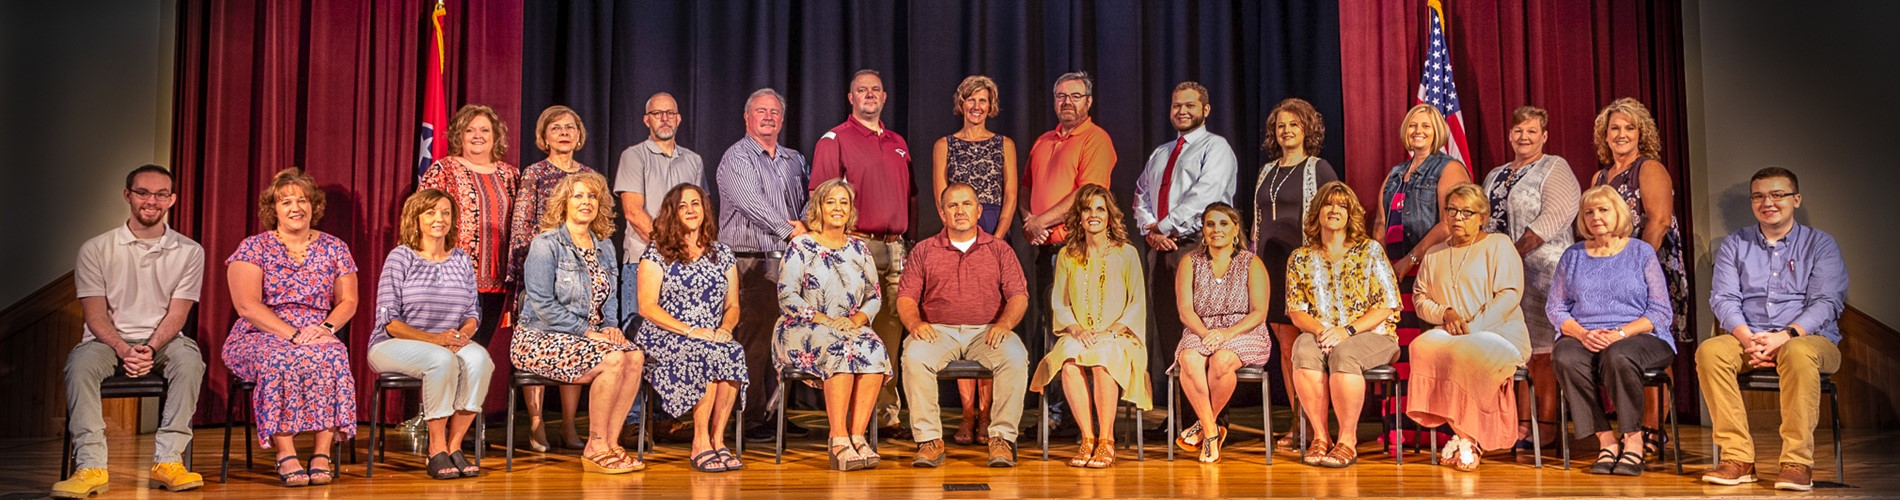 Johnson County Schools Central Office Staff 2020-21